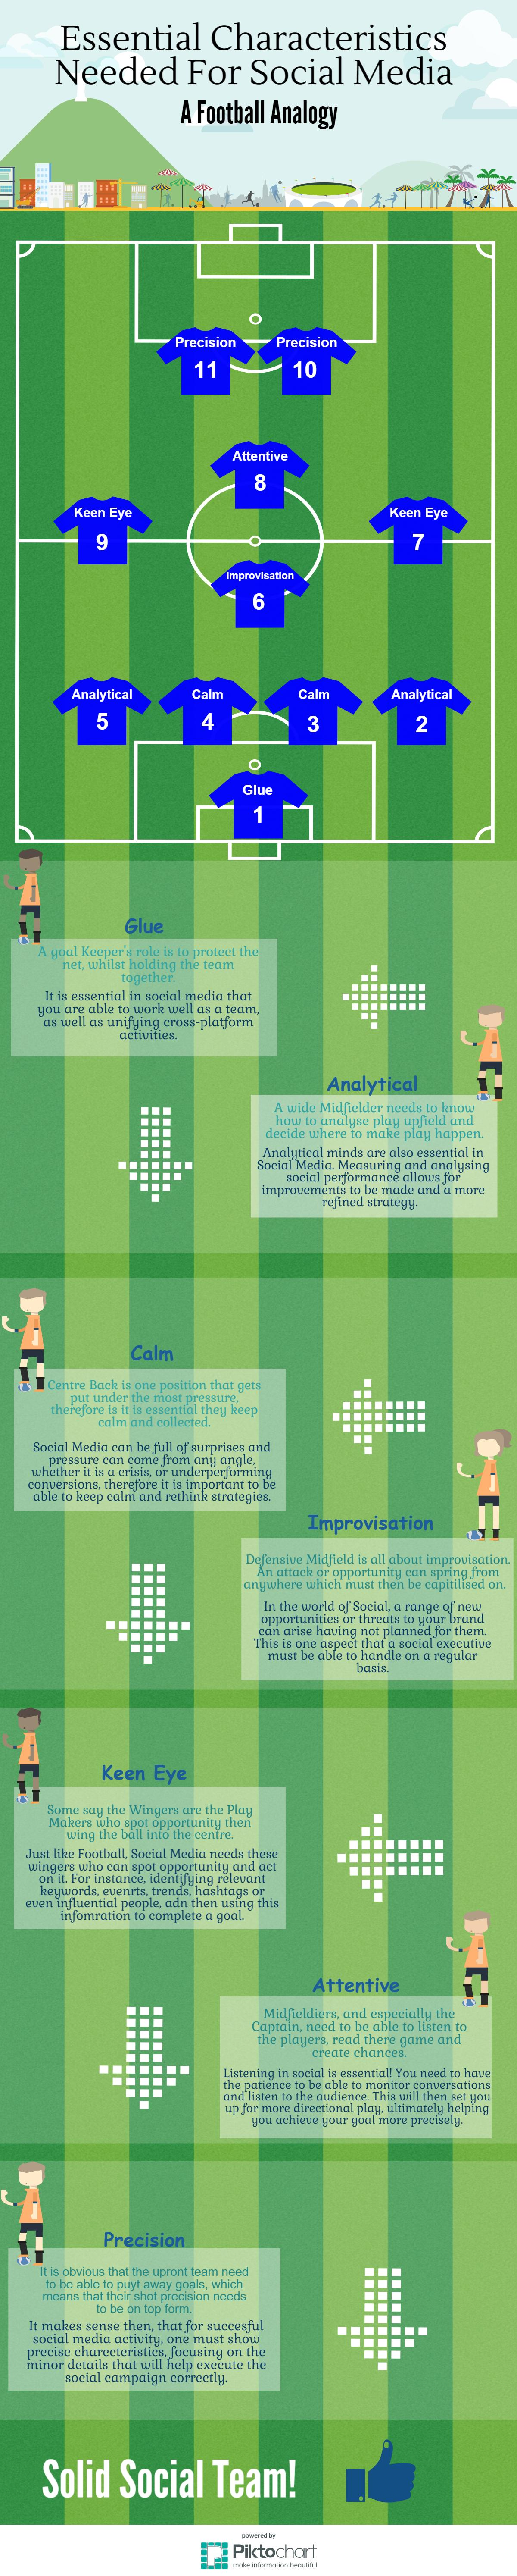 Social-Media-Football-Analogy-1 Essential Characteristics Needed For Social Media: A football Analogy